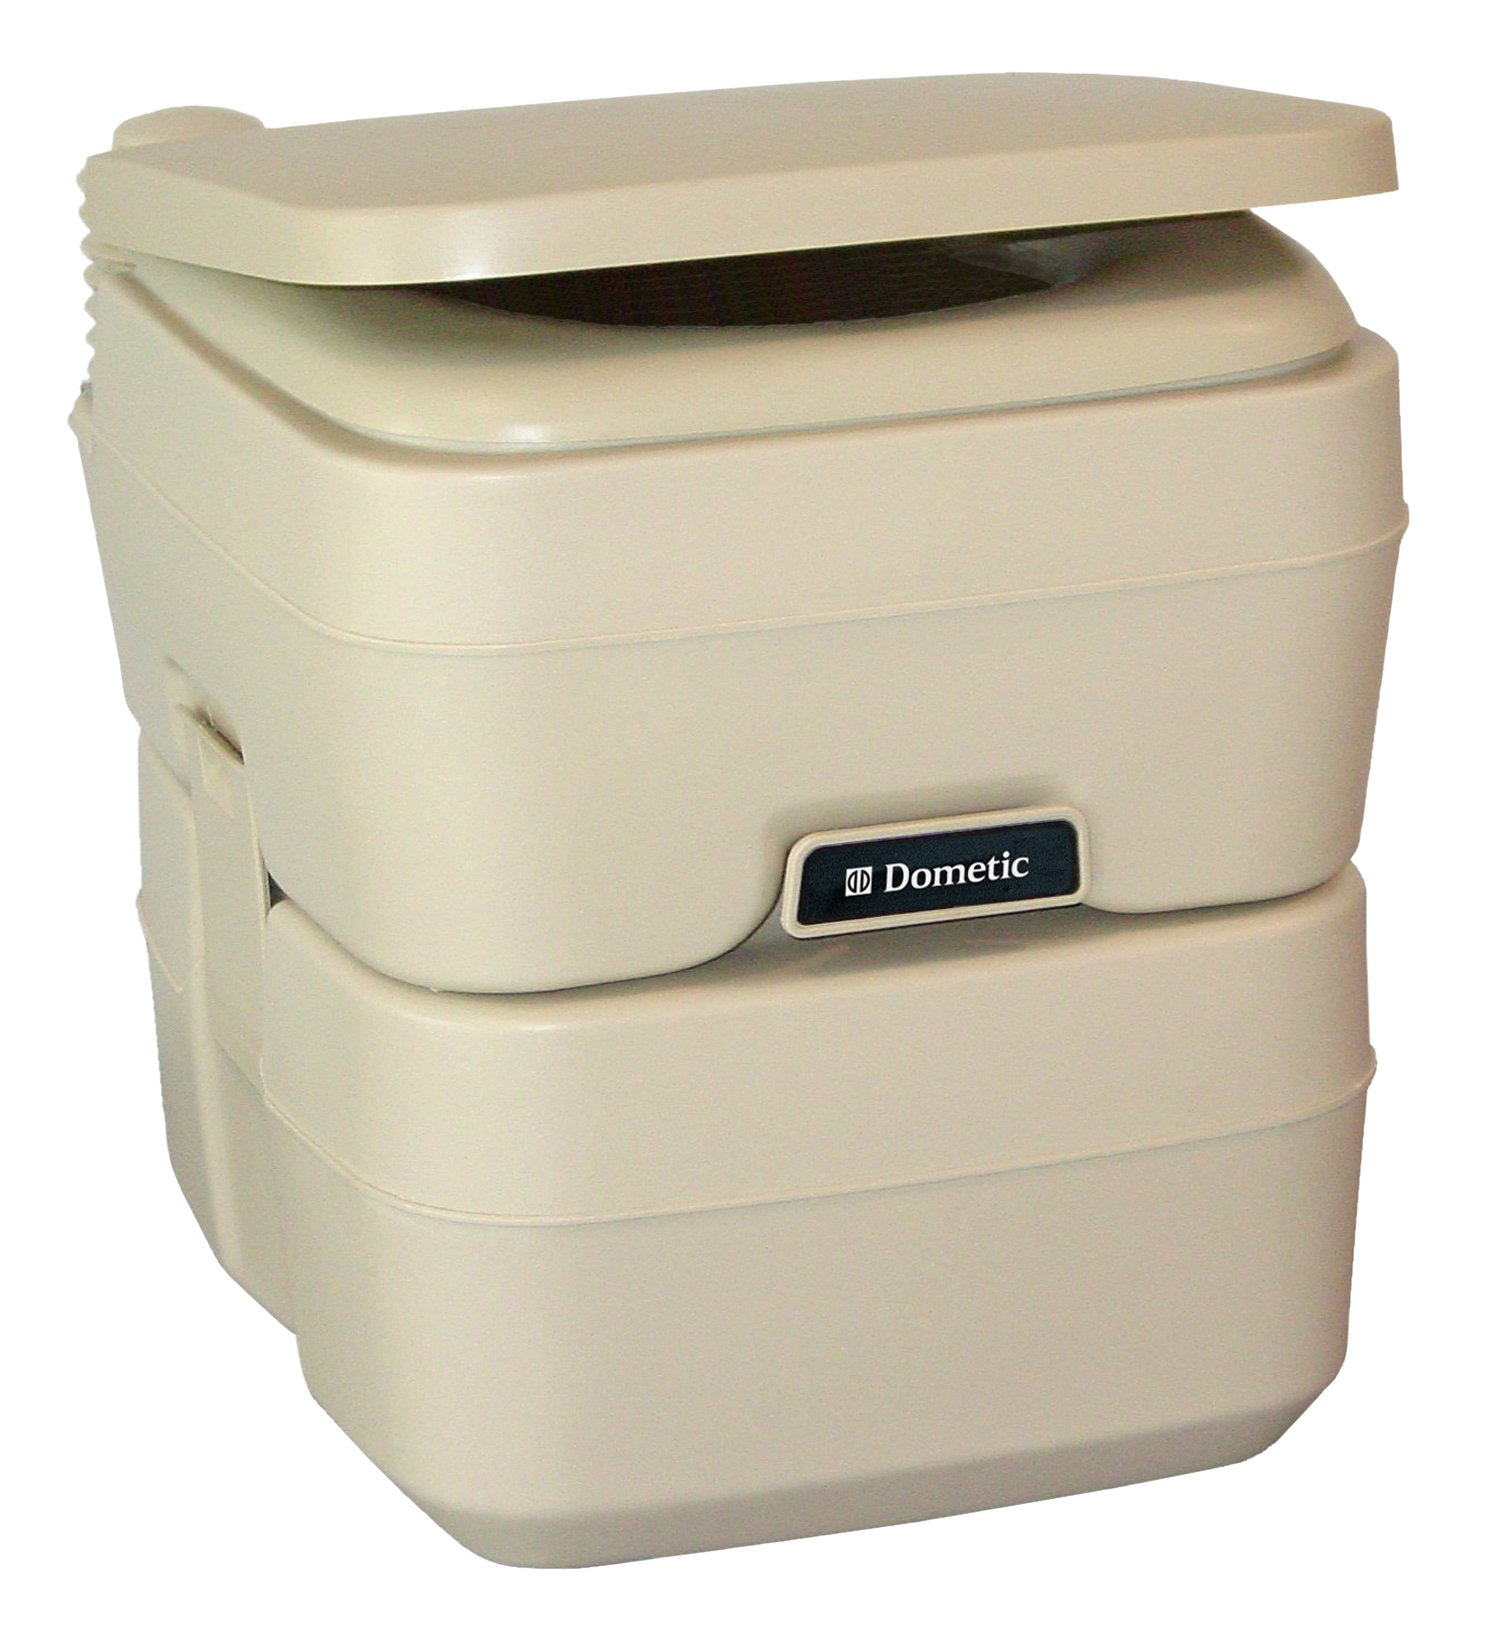 Dometic 301096602 5.0 Gallon Portable Toilet, Parchment by Dometic